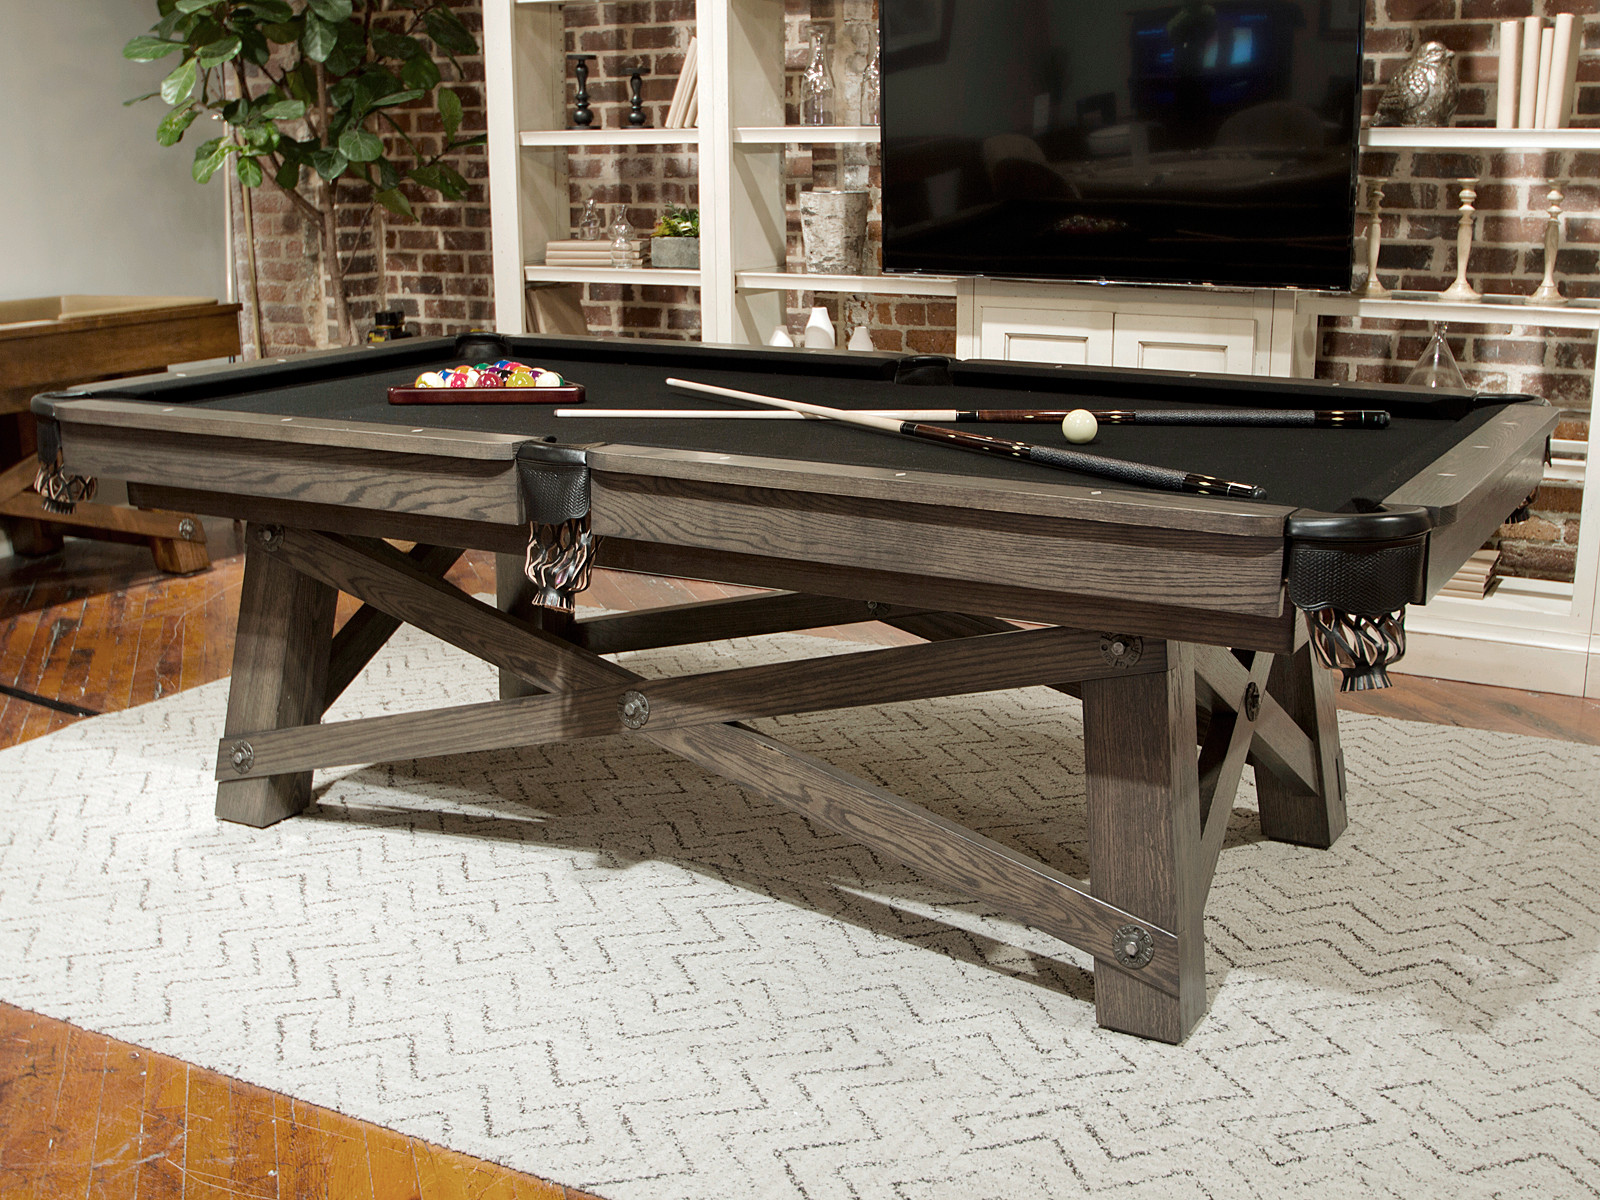 Loft pool table by california house pool table game - Pool table house ...